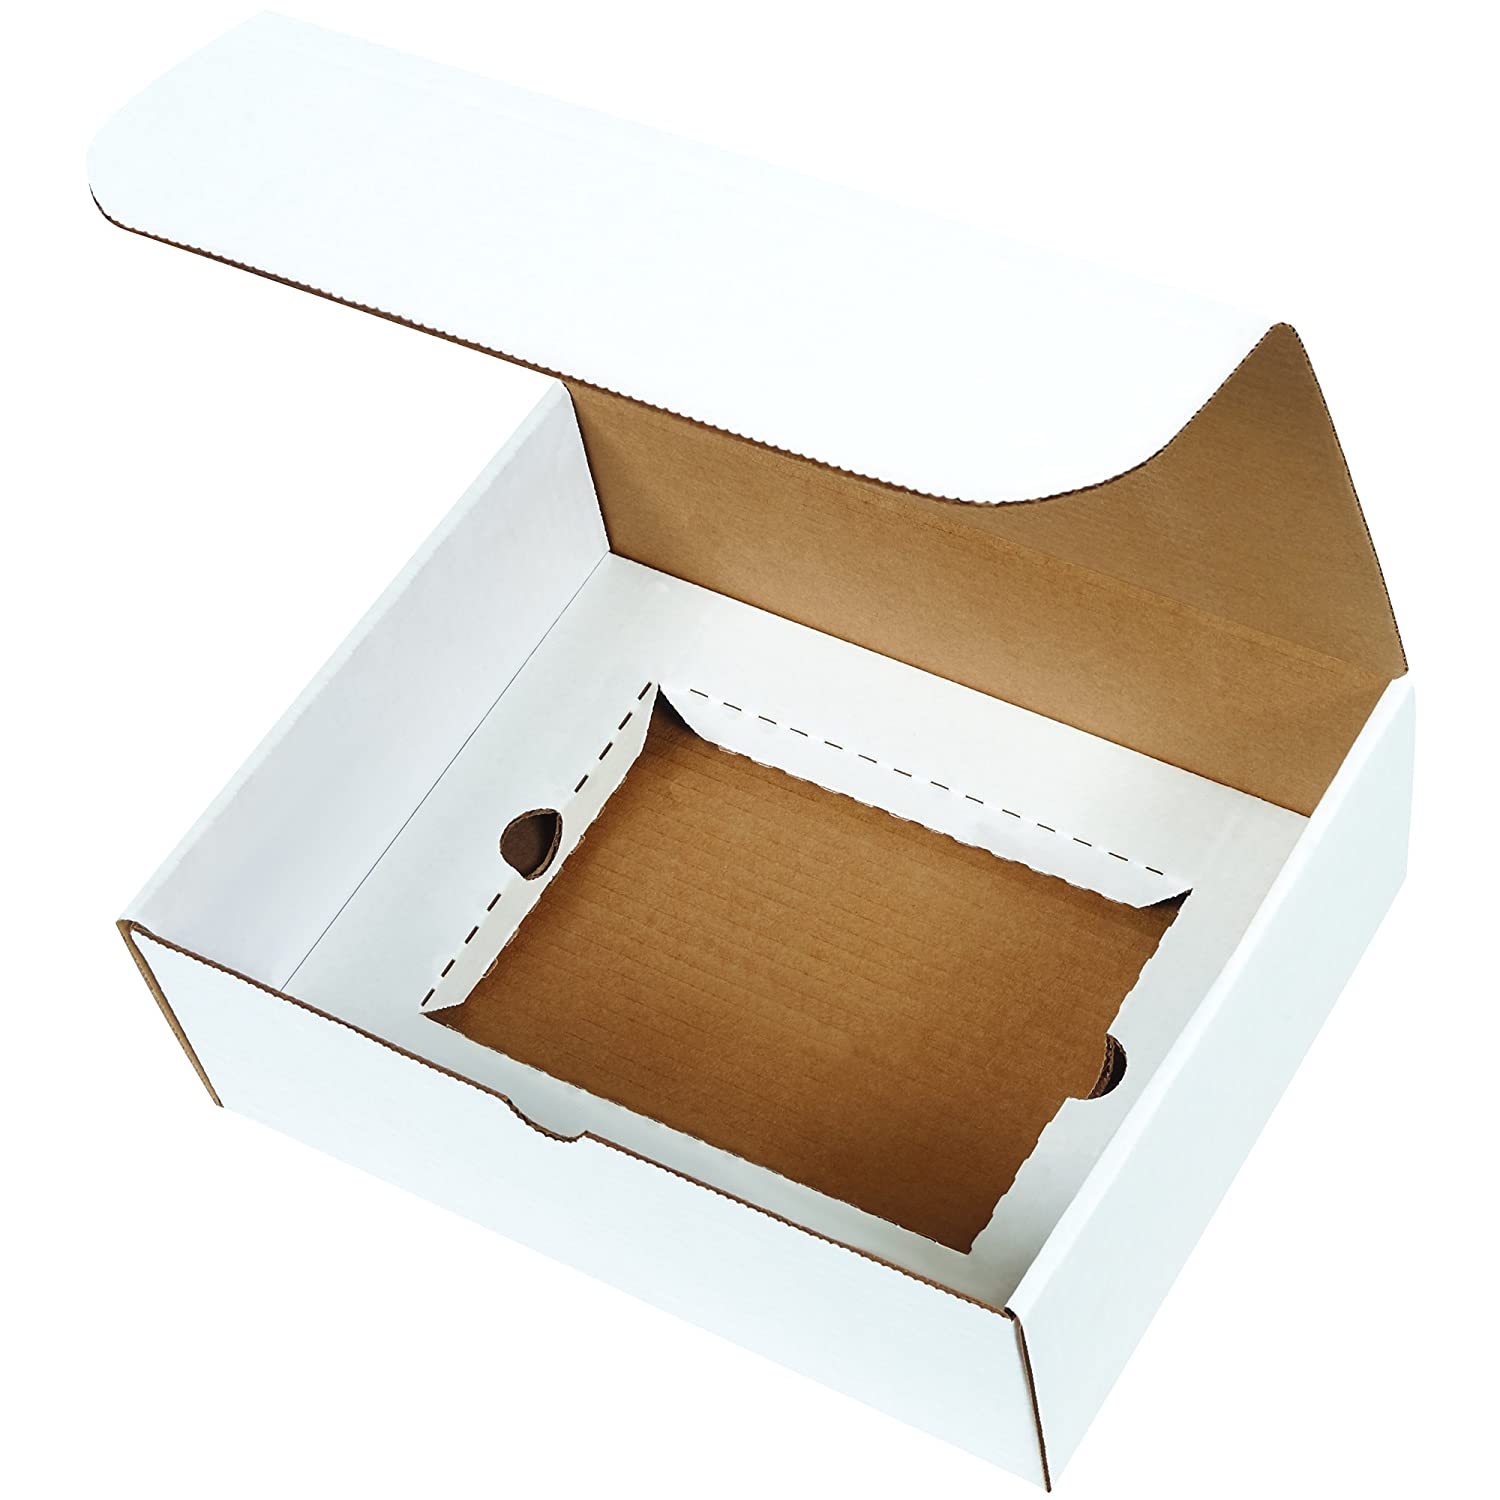 15 1//8 x 11 1//8 x 4 Inches Die-Cut Shipping Boxes Boxes Fast BFMIBMS1000K Corrugated Cardboard Literature Mailers Tuck Top One-Piece Large Brown Kraft Mailing Boxes Pack of 50